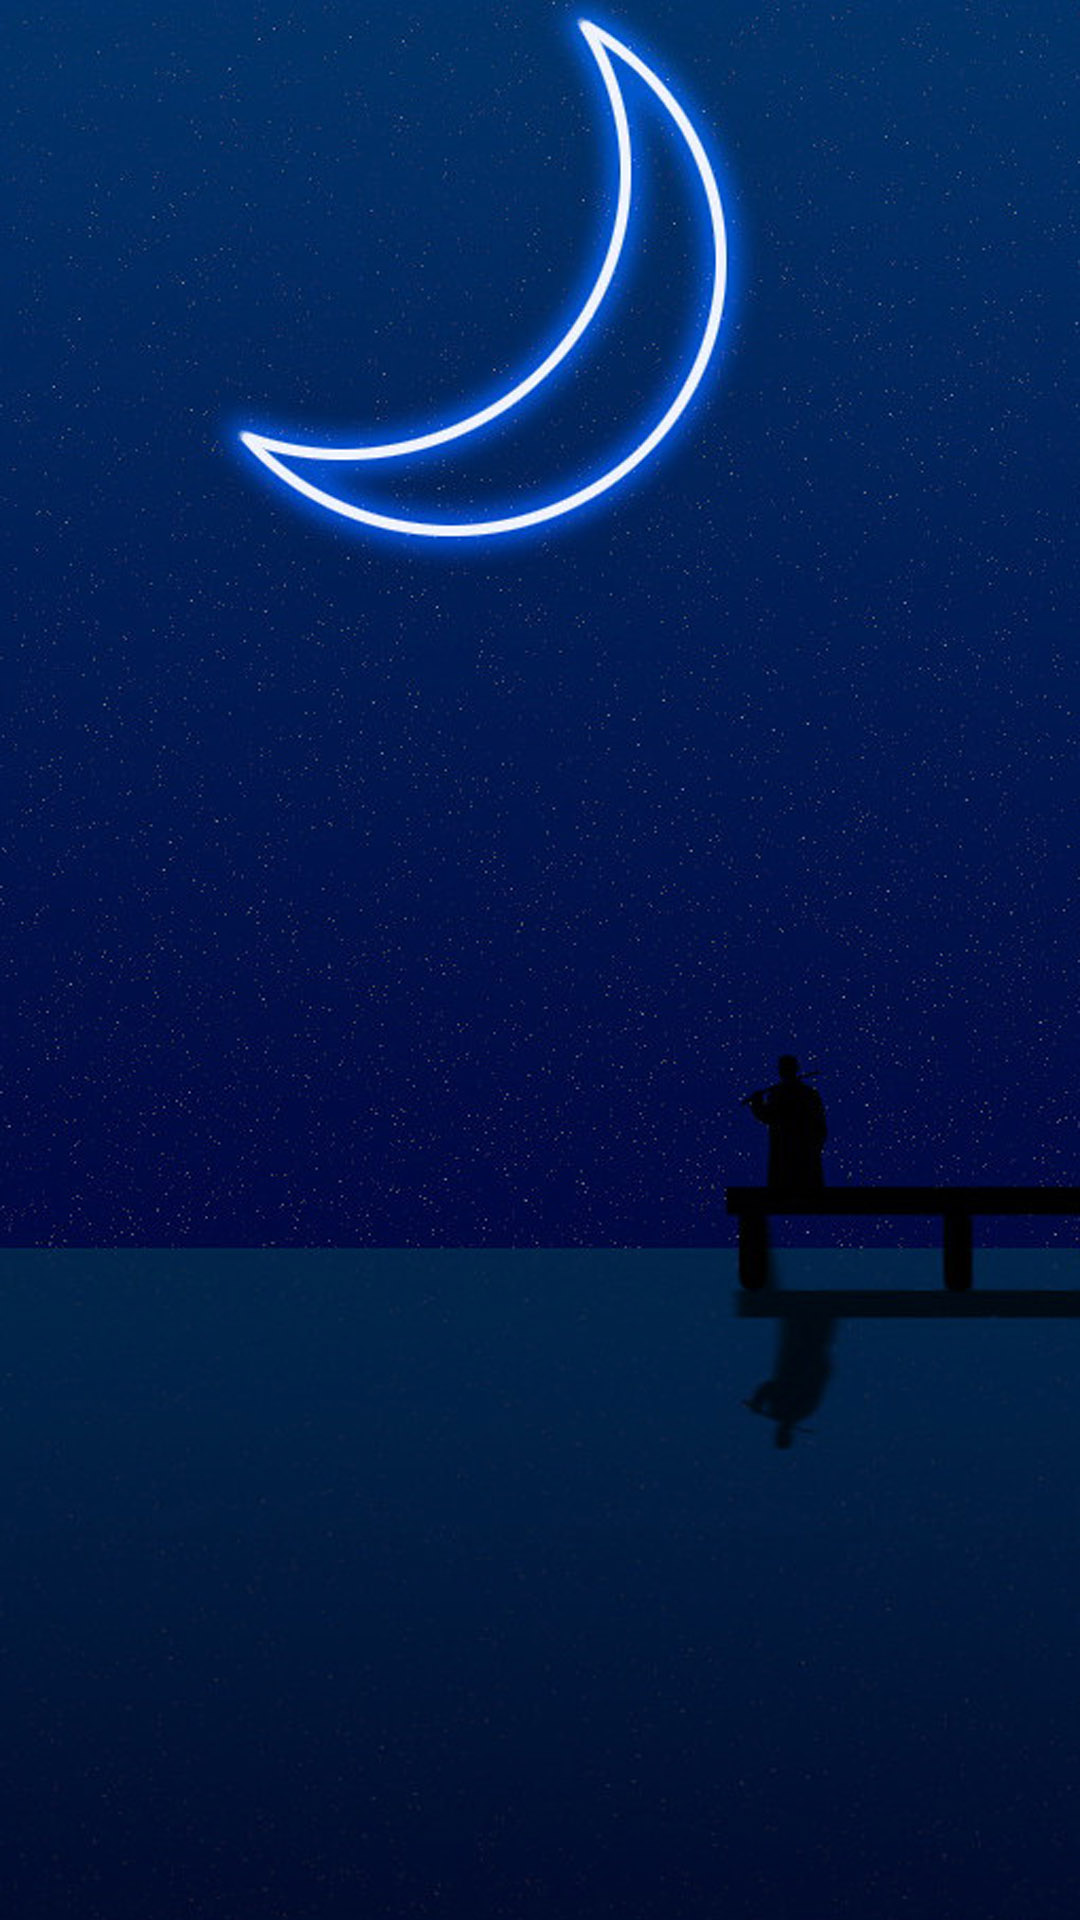 Night Moon Lake Smartphone Wallpaper HD